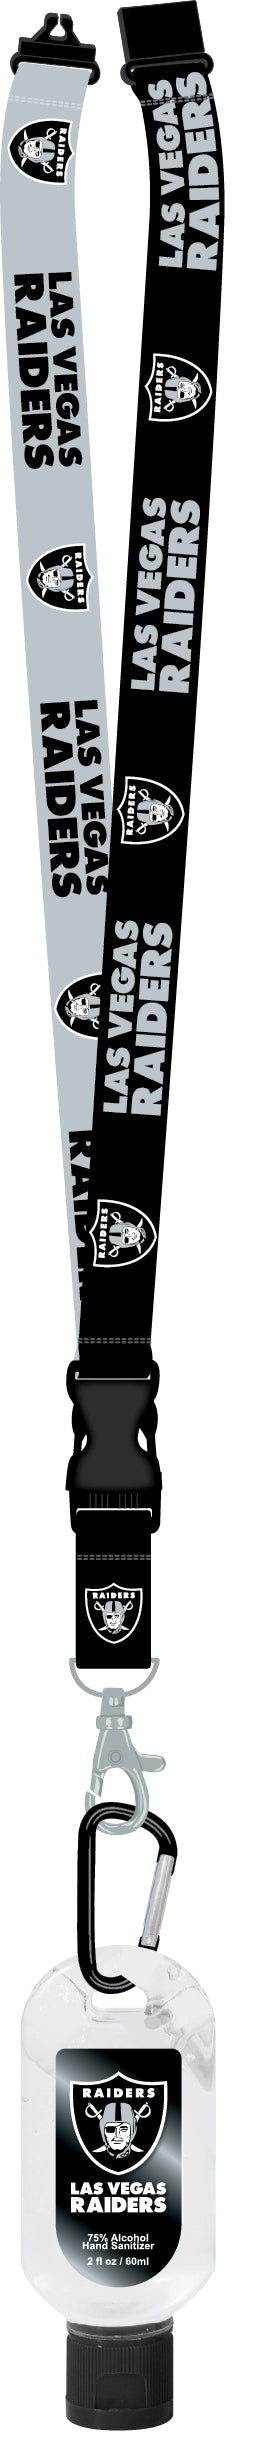 Las Vegas Raiders Sanitizer Lanyard